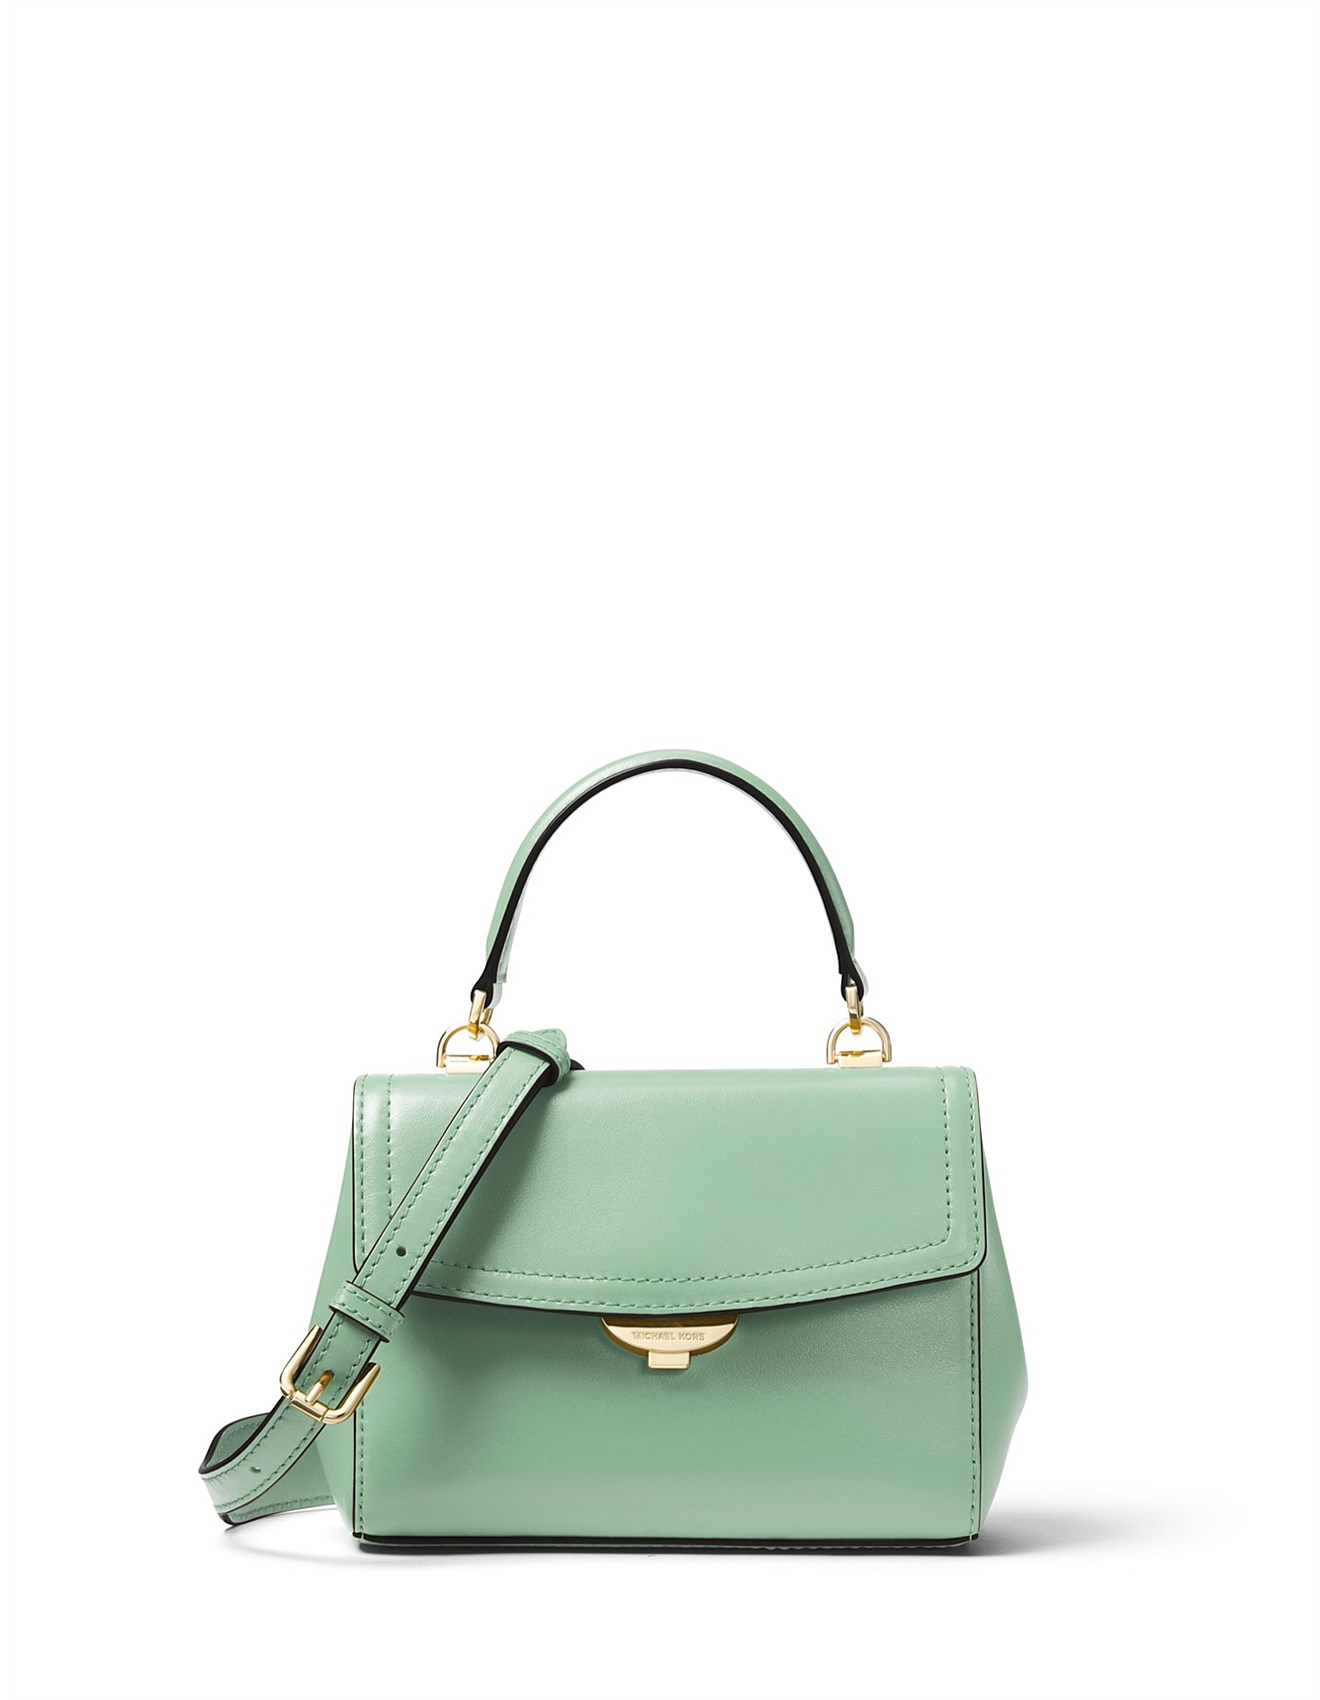 60c82768b48c Bags & Accessories Sale | Buy Handbags Online | David Jones - Ava Extra- Small Leather Crossbody